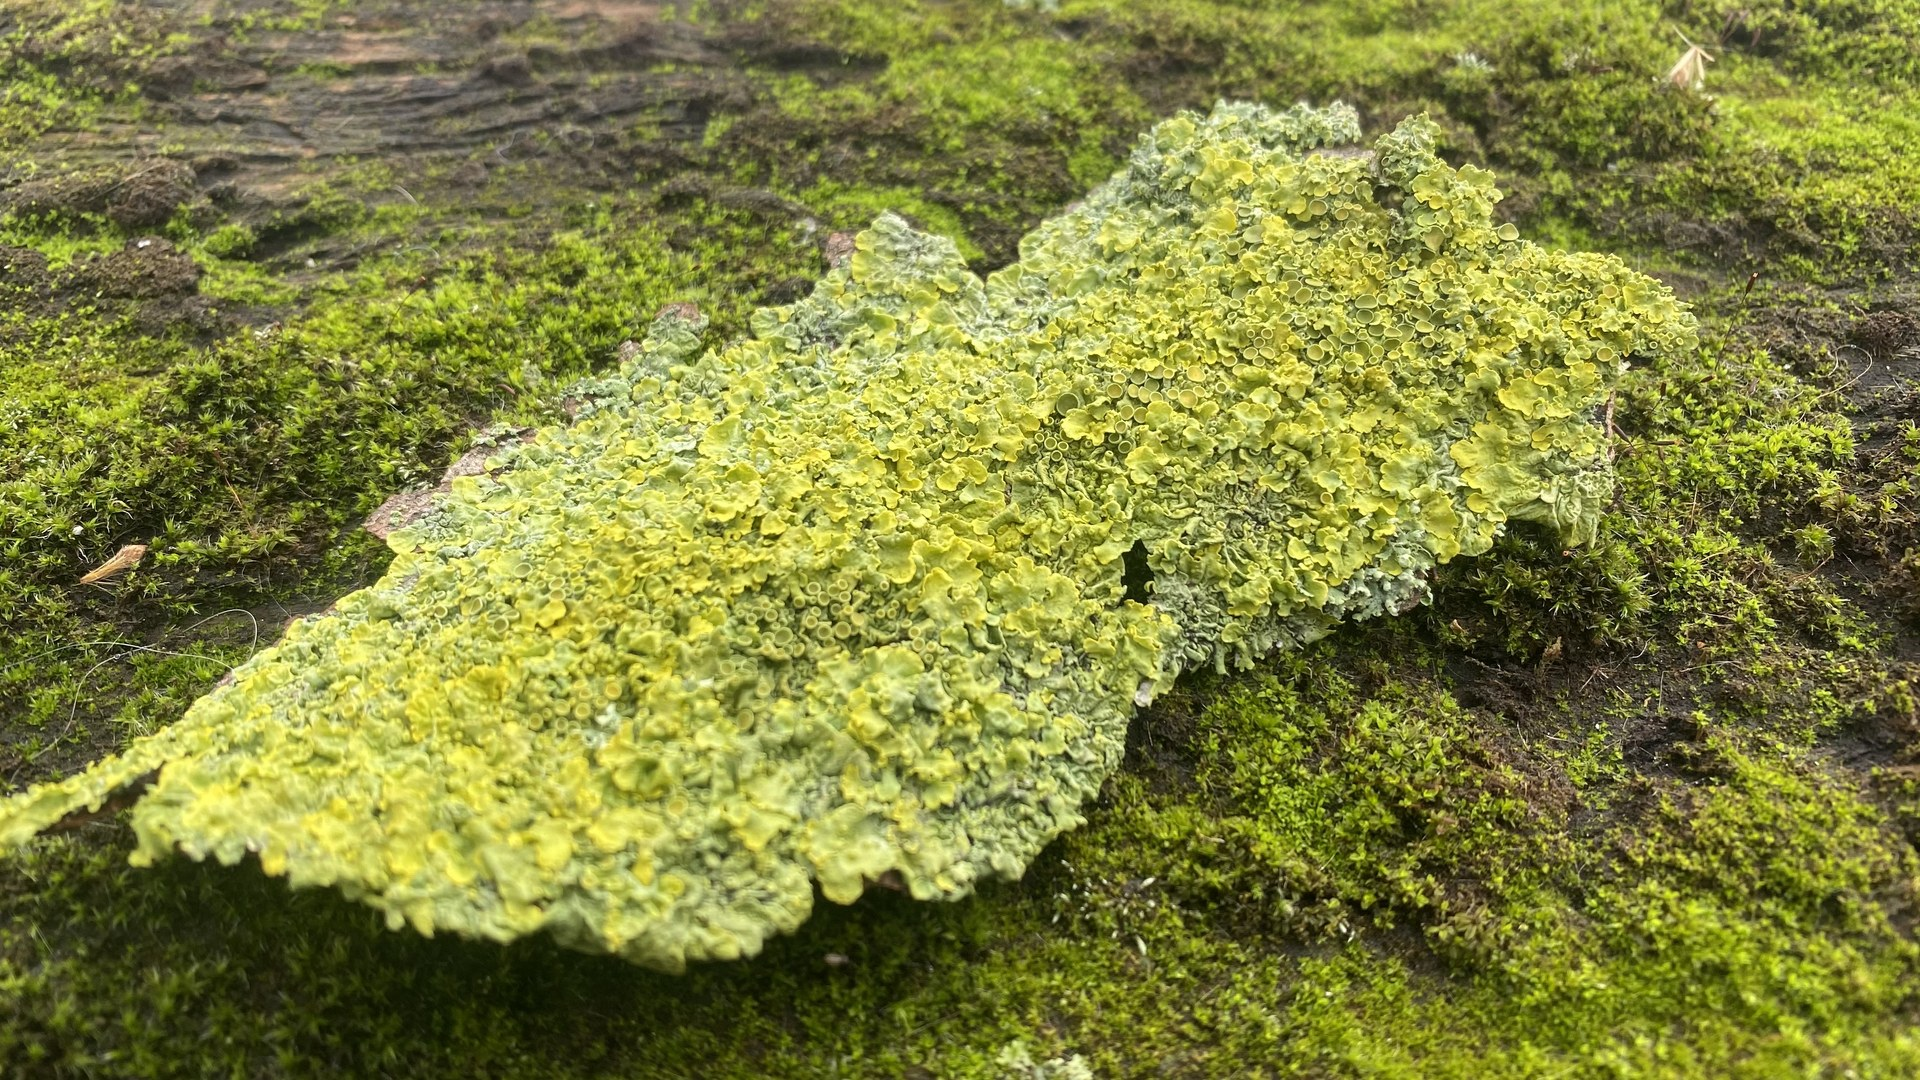 The Moss